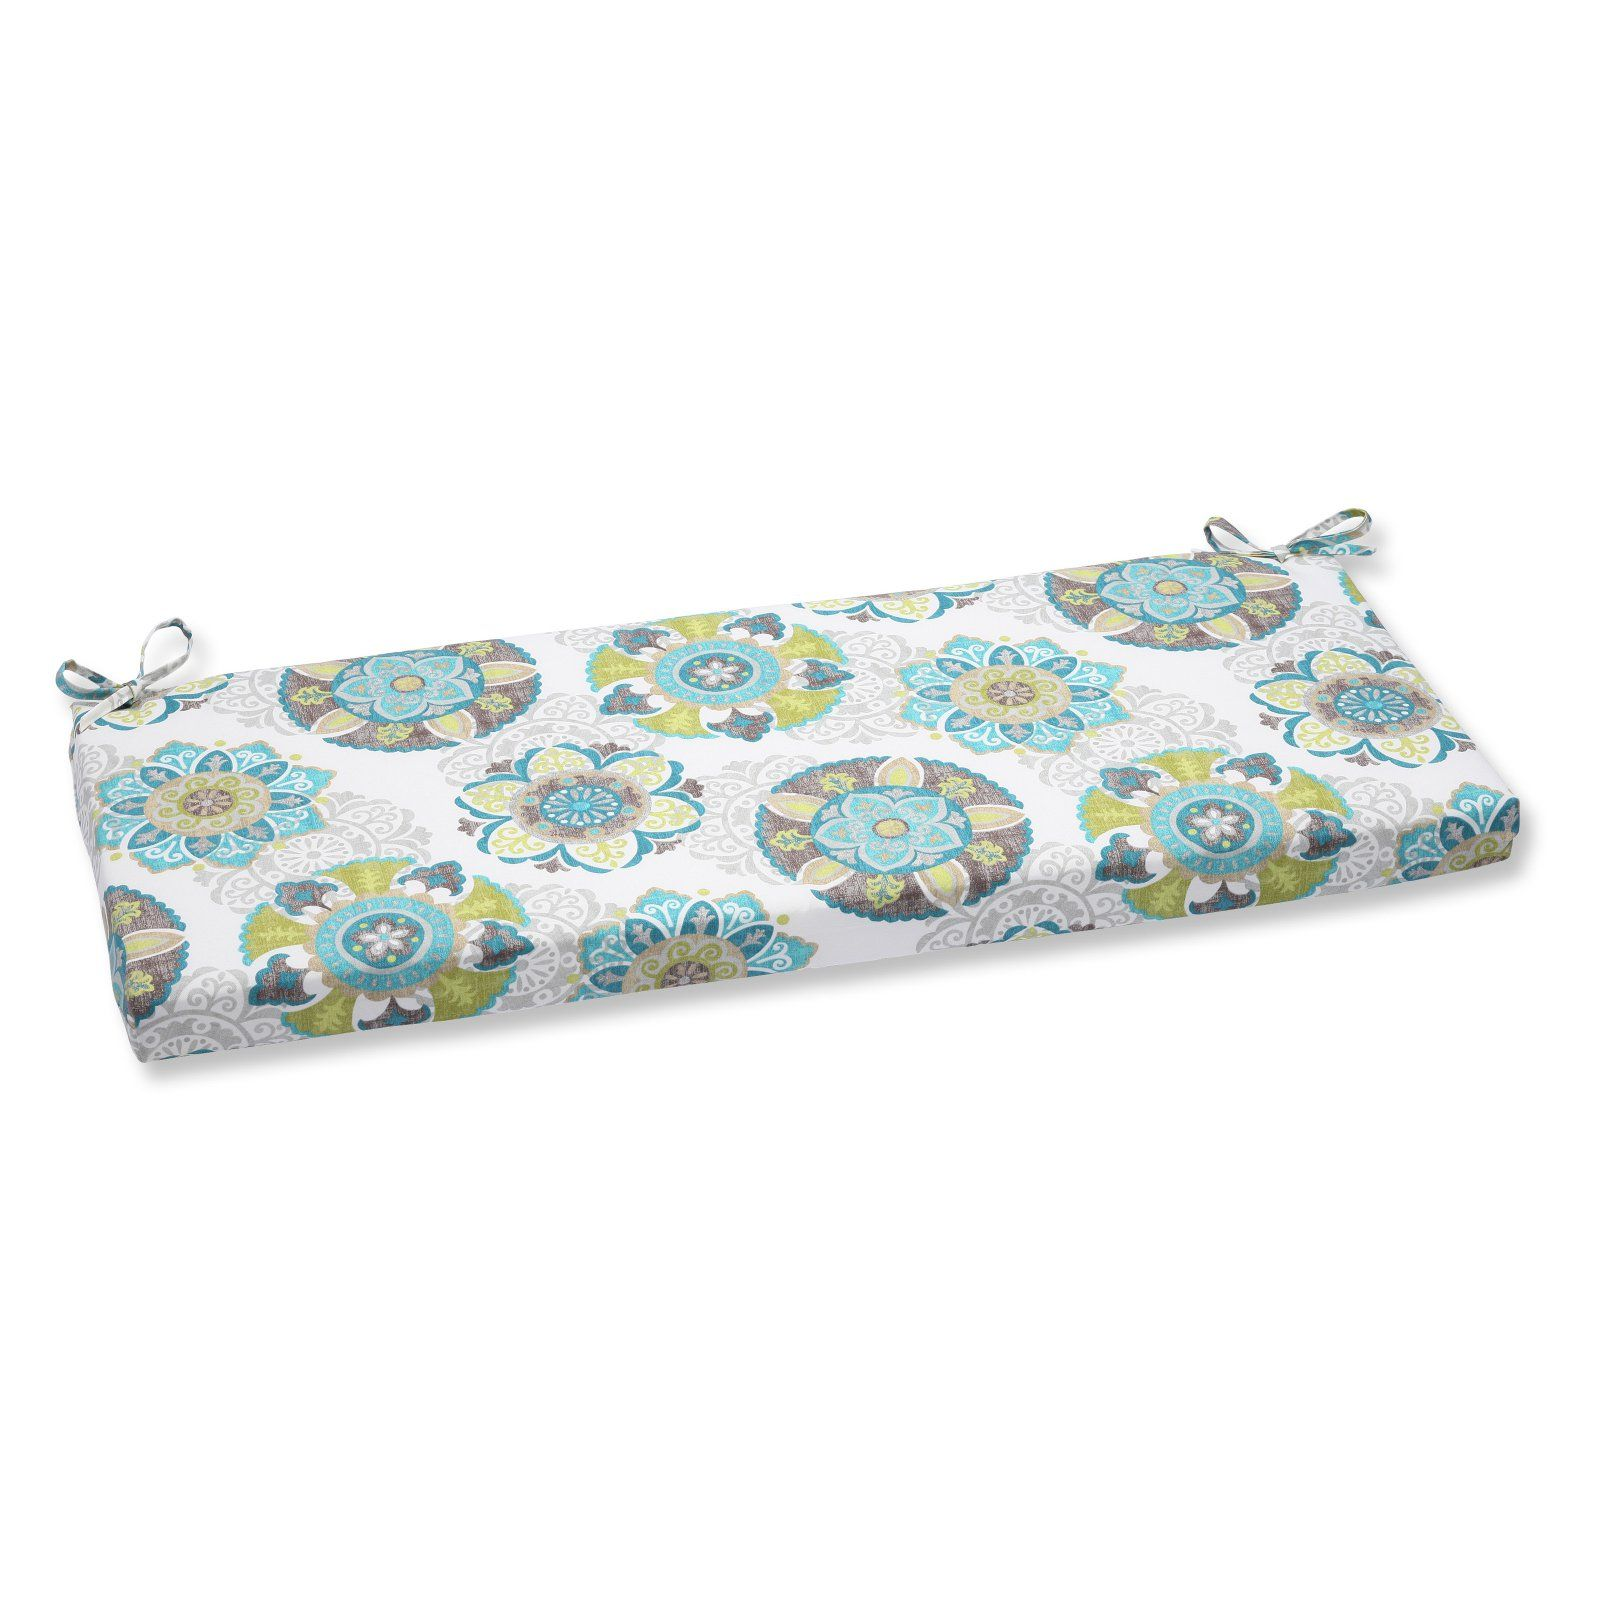 Pillow Perfect Allodala Oasis 45 X 18 In Bench Cushion With Images Patio Bench Cushions Perfect Pillow Bench Cushions